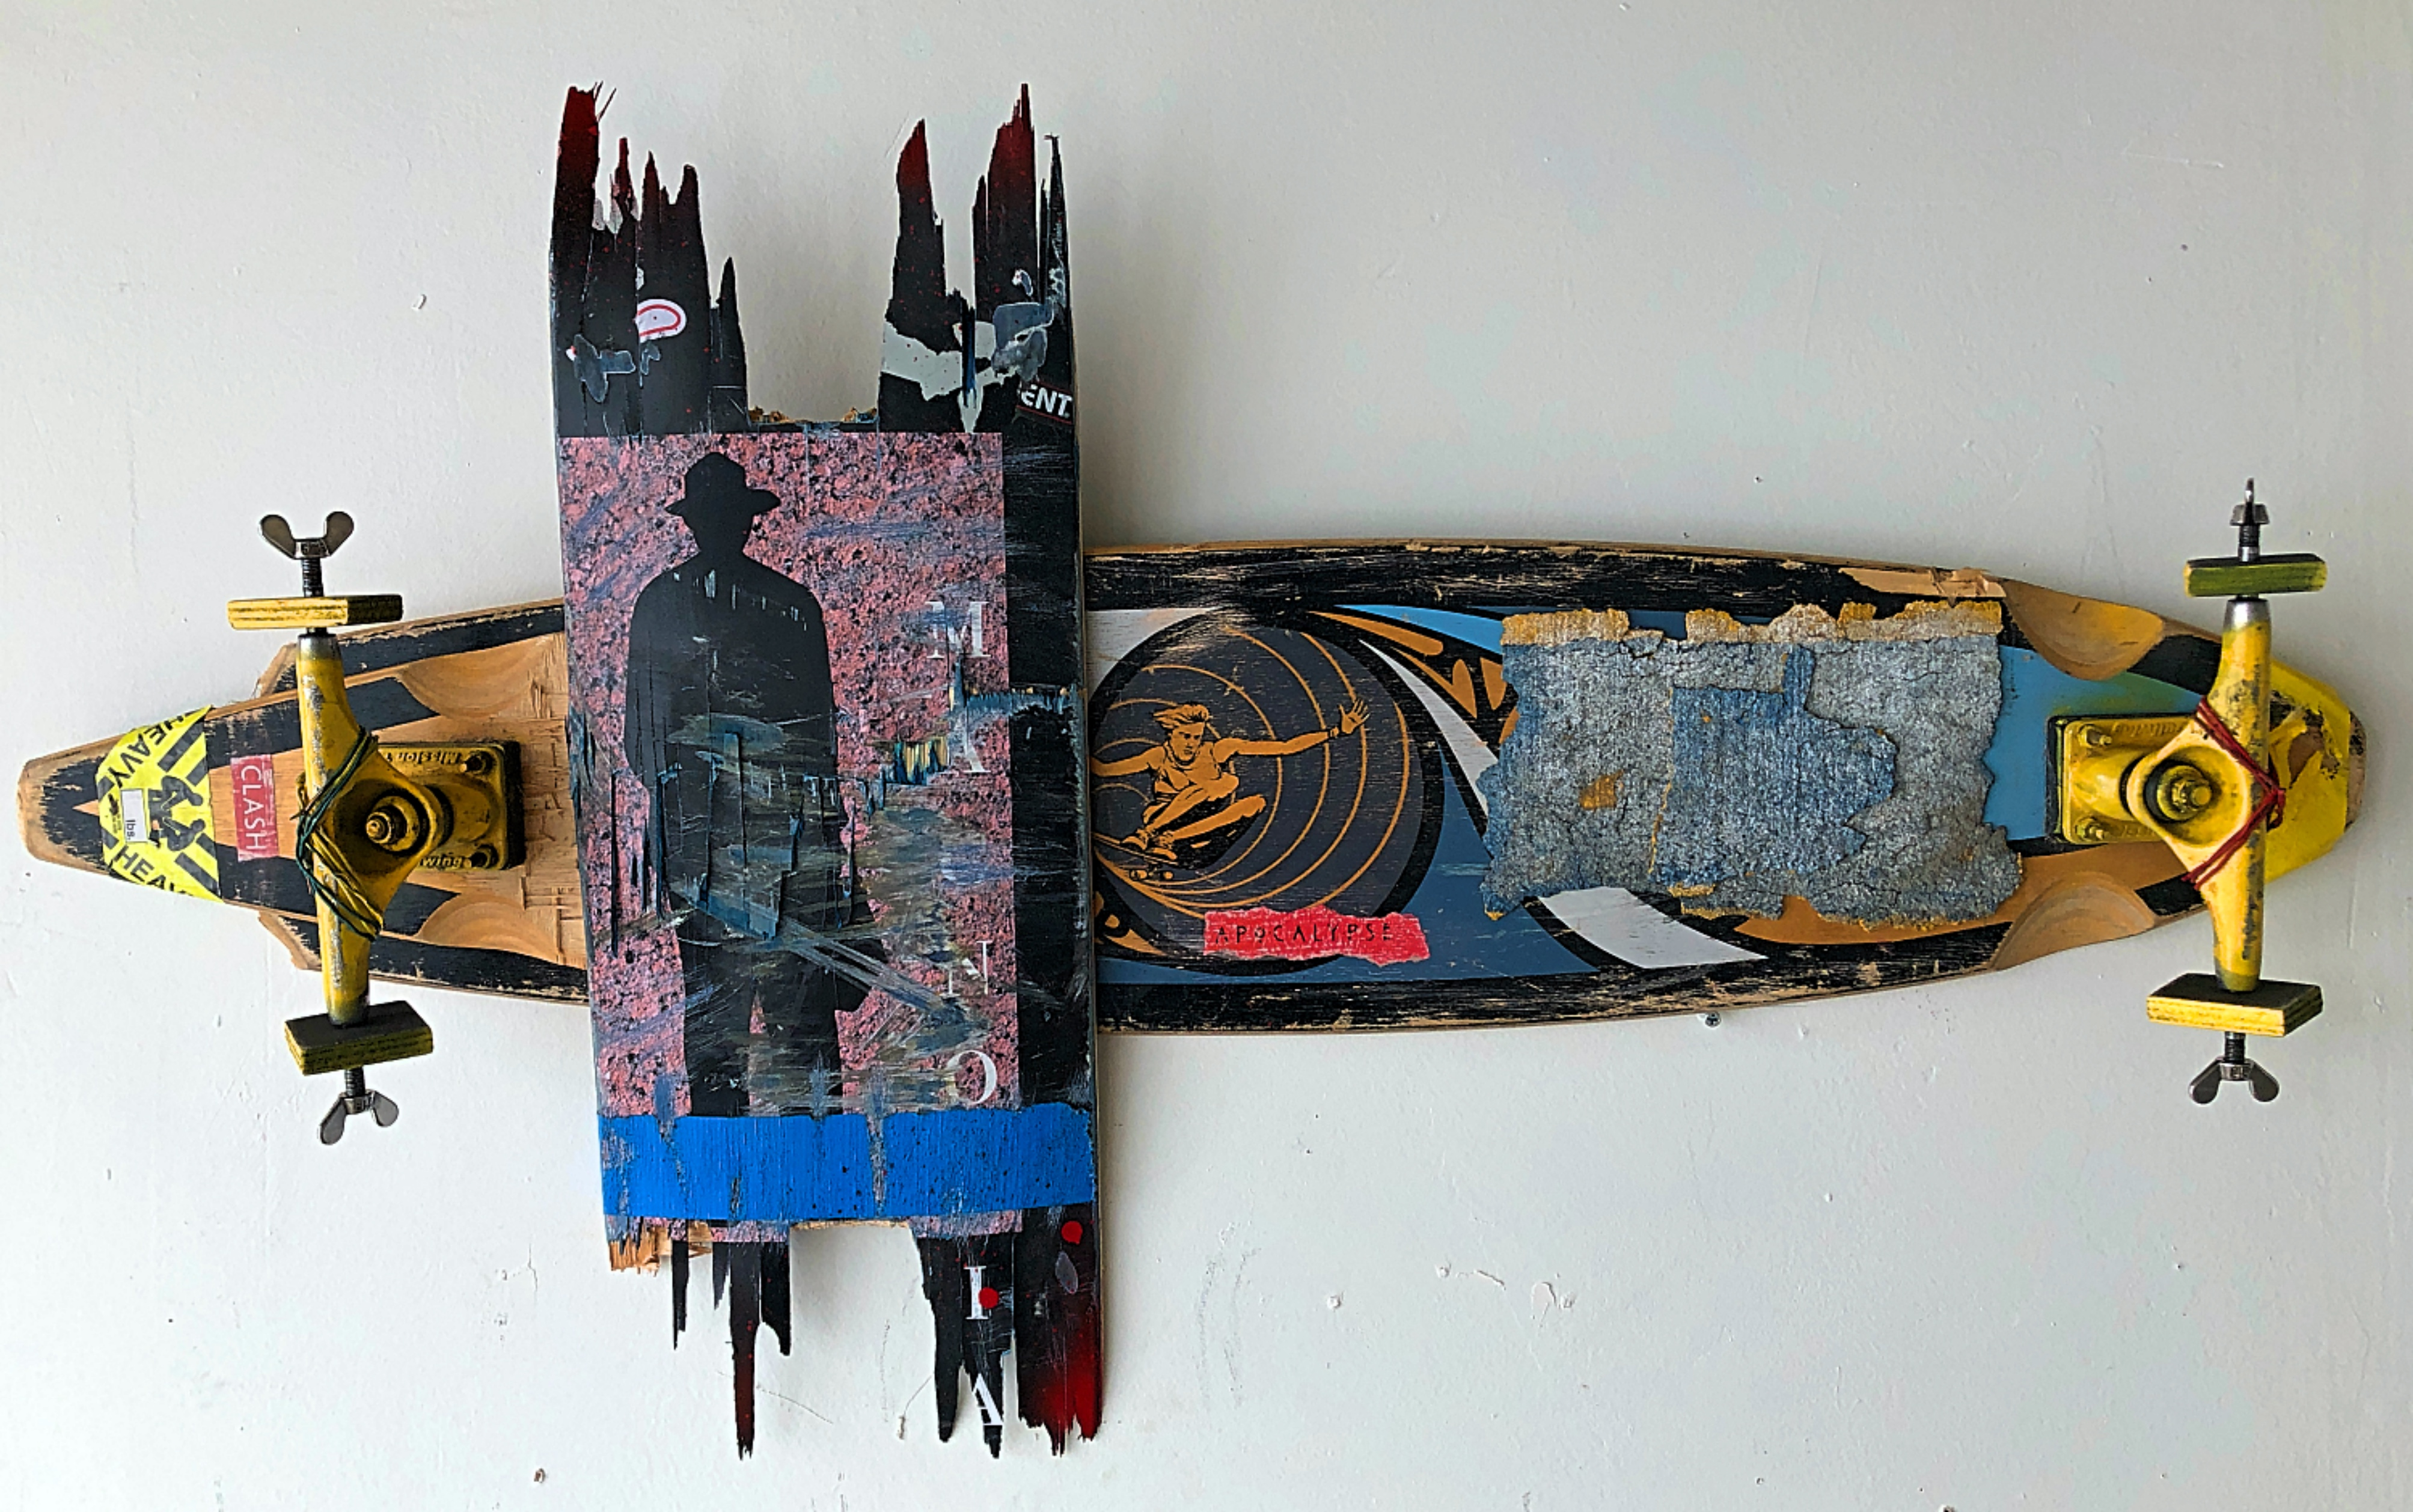 "NO FREE RIDE, 2020 | Recycled skateboards, paint, tape and wood, 16"" x 42"" 